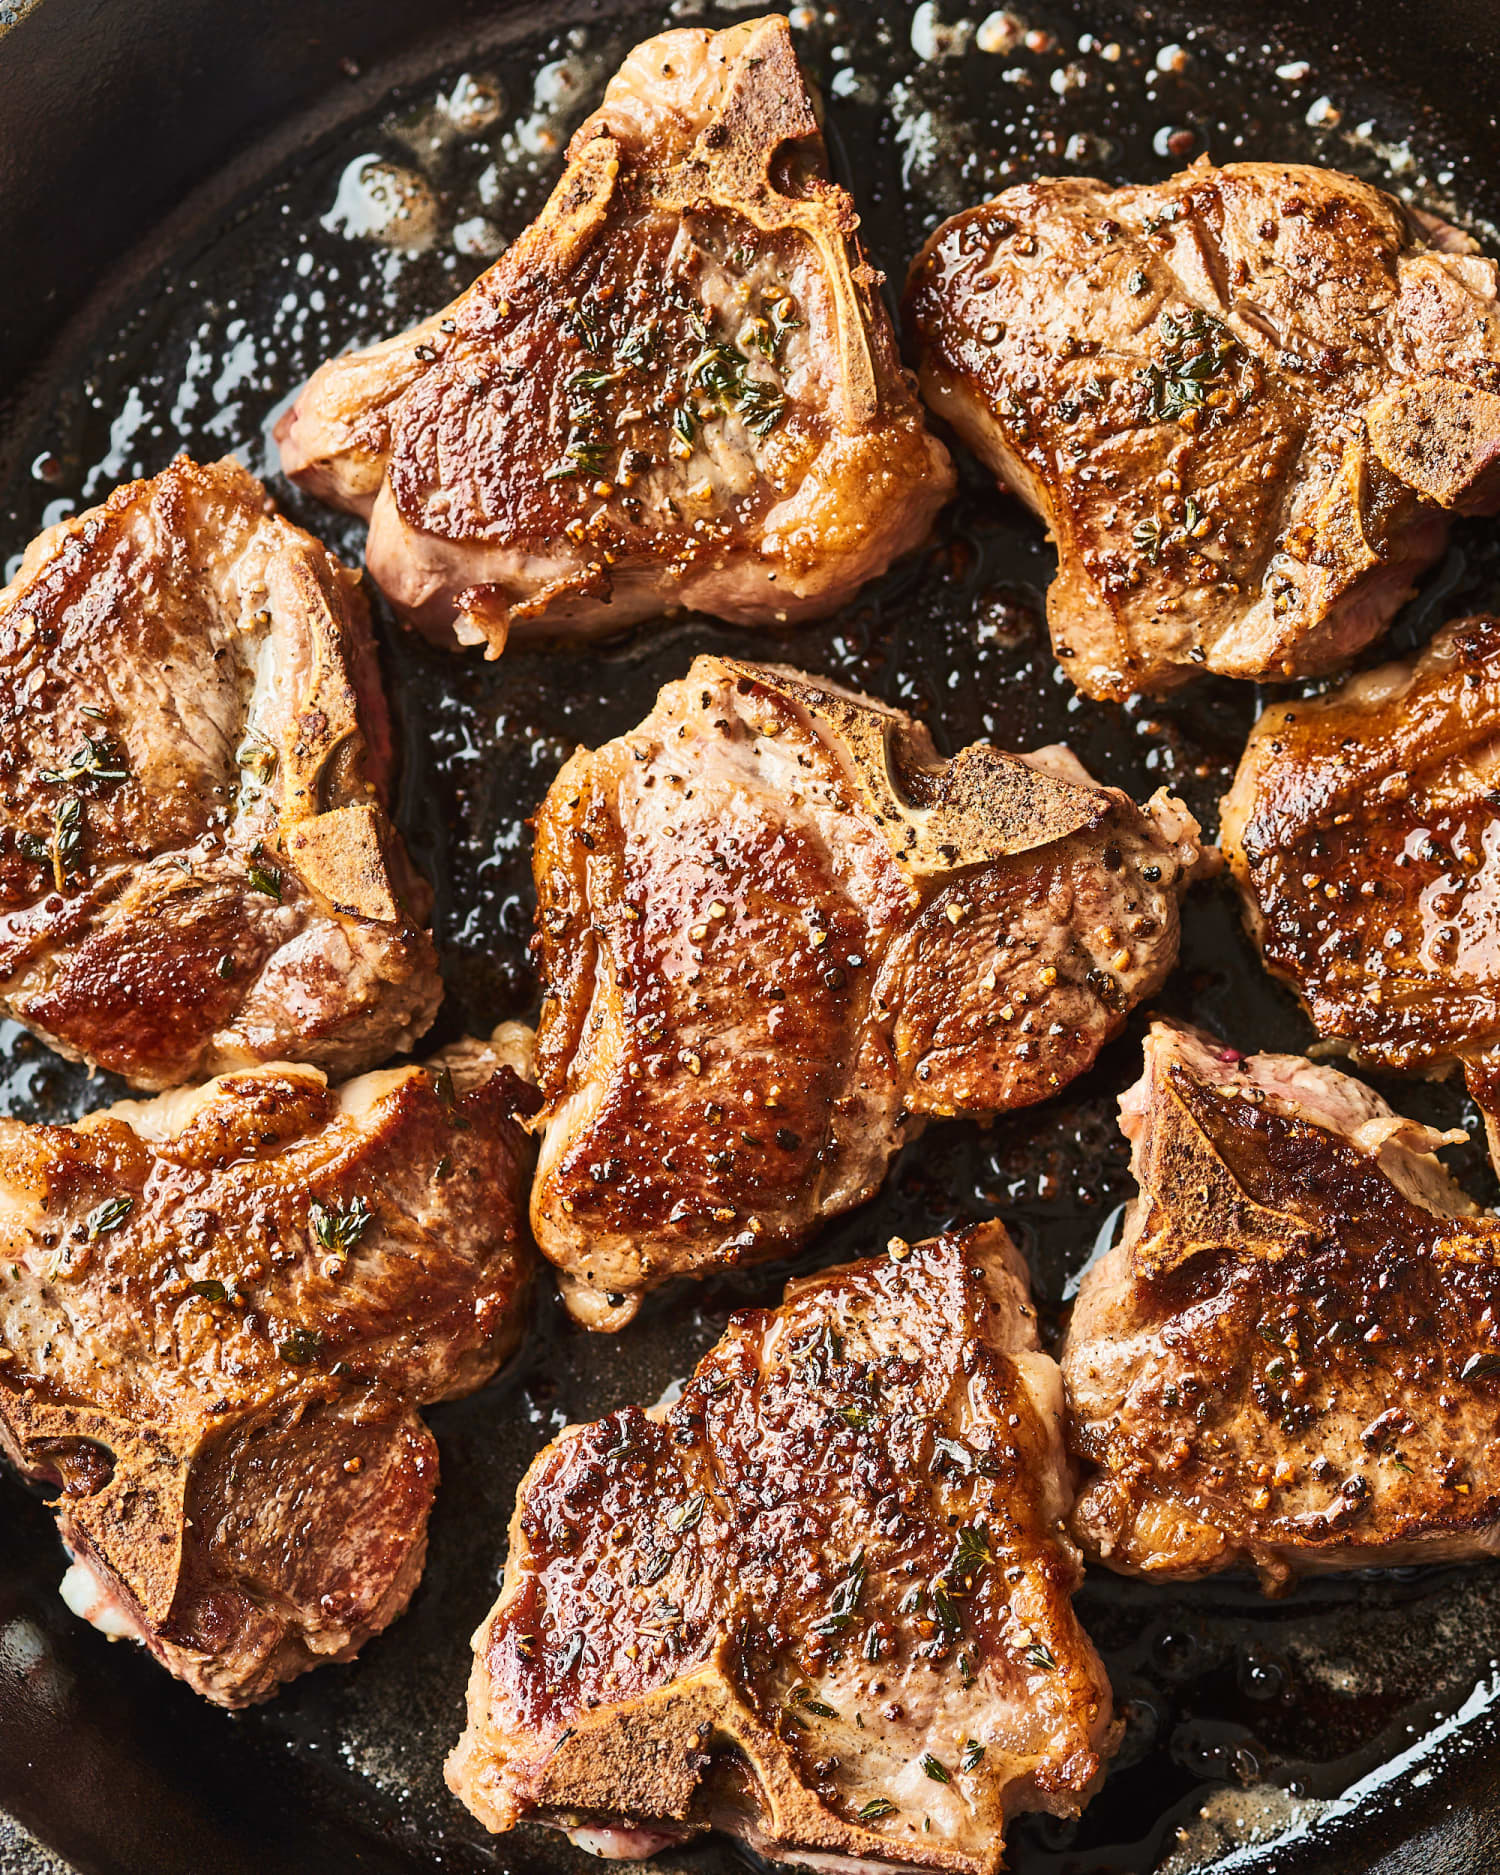 How To Make the Best-Ever Lamb Chops in Just 20 Minutes